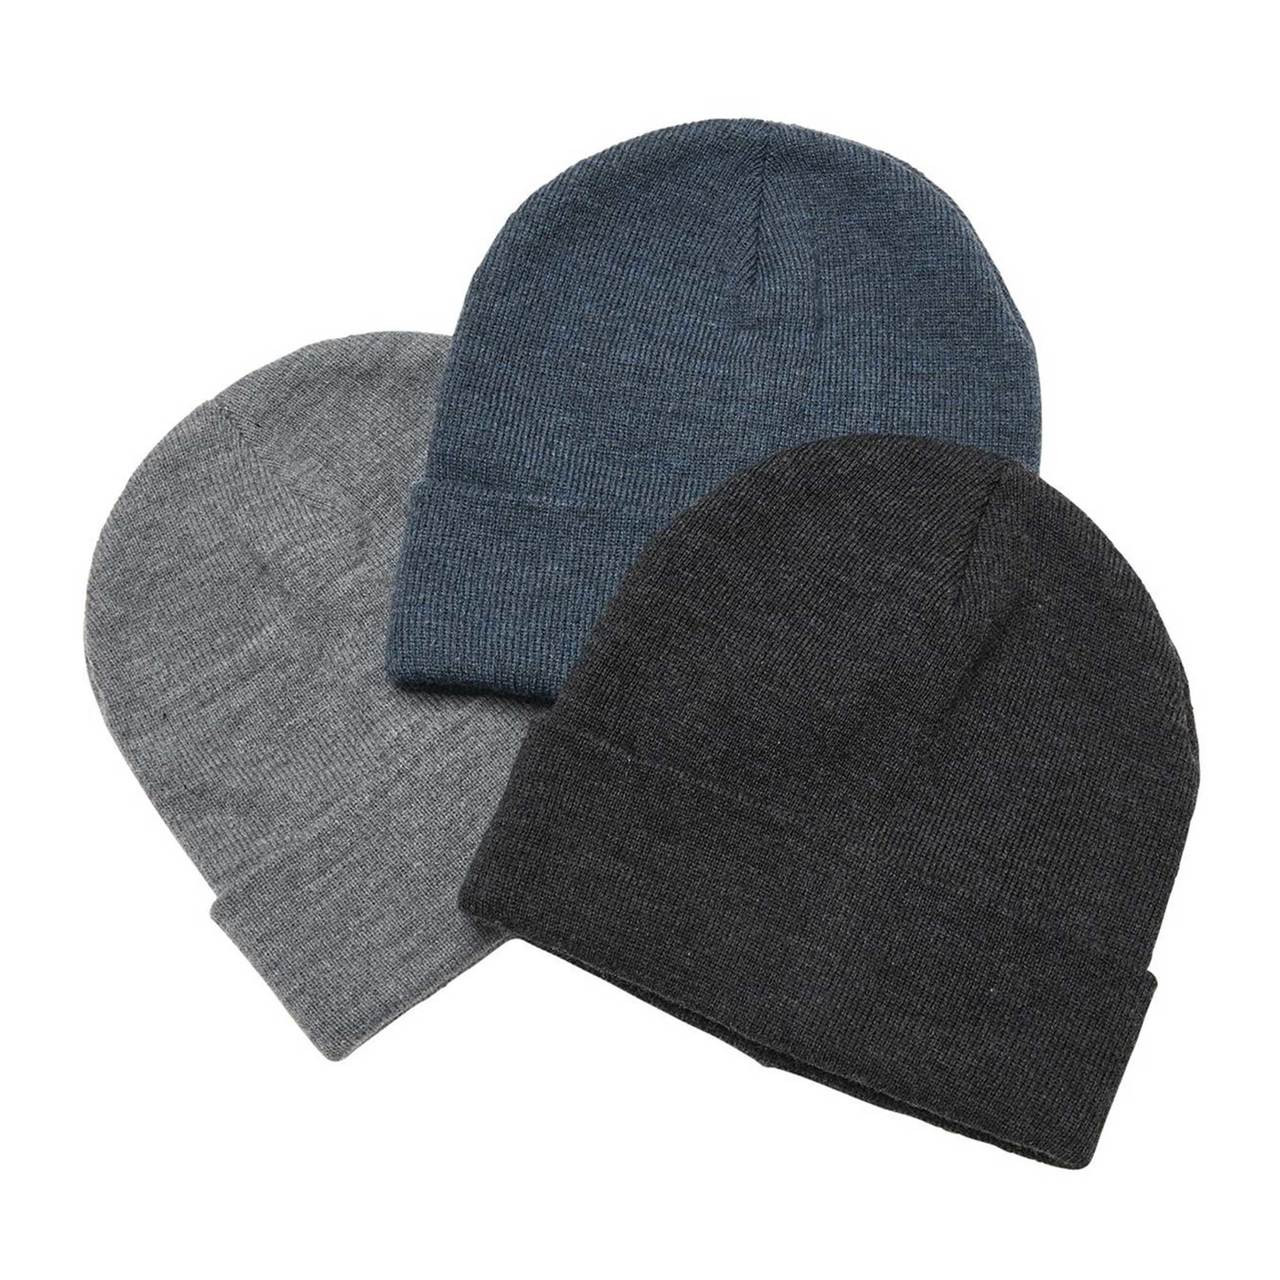 official photos 53135 6fdb5 Plain Heather Knit Beanie with Roll Up Cuff   Wholesale Hats   Caps Online